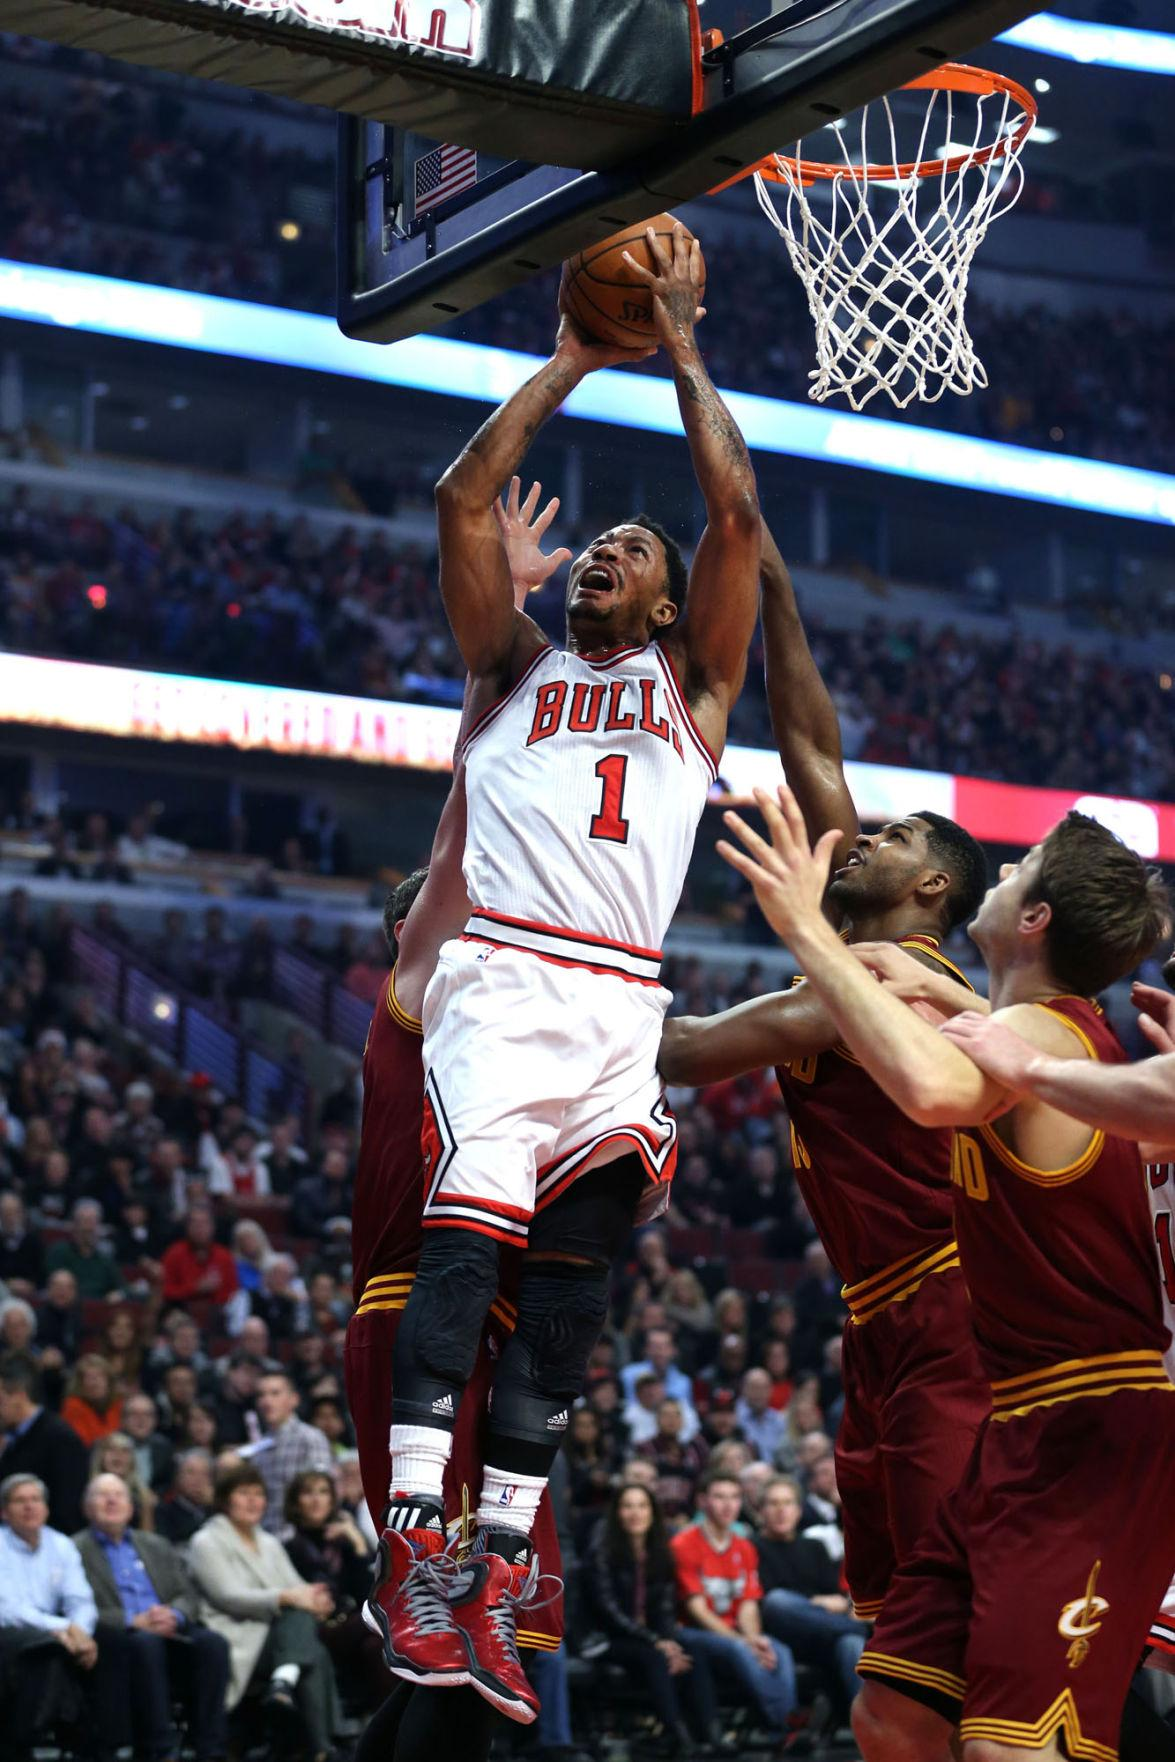 The+Chicago+Bulls%E2%80%99+Derrick+Rose+scores+under+the+basket+in+the+first+half+against+the+Cleveland+Cavaliers+at+the+United+Center+in+Chicago+on+Oct.+1.